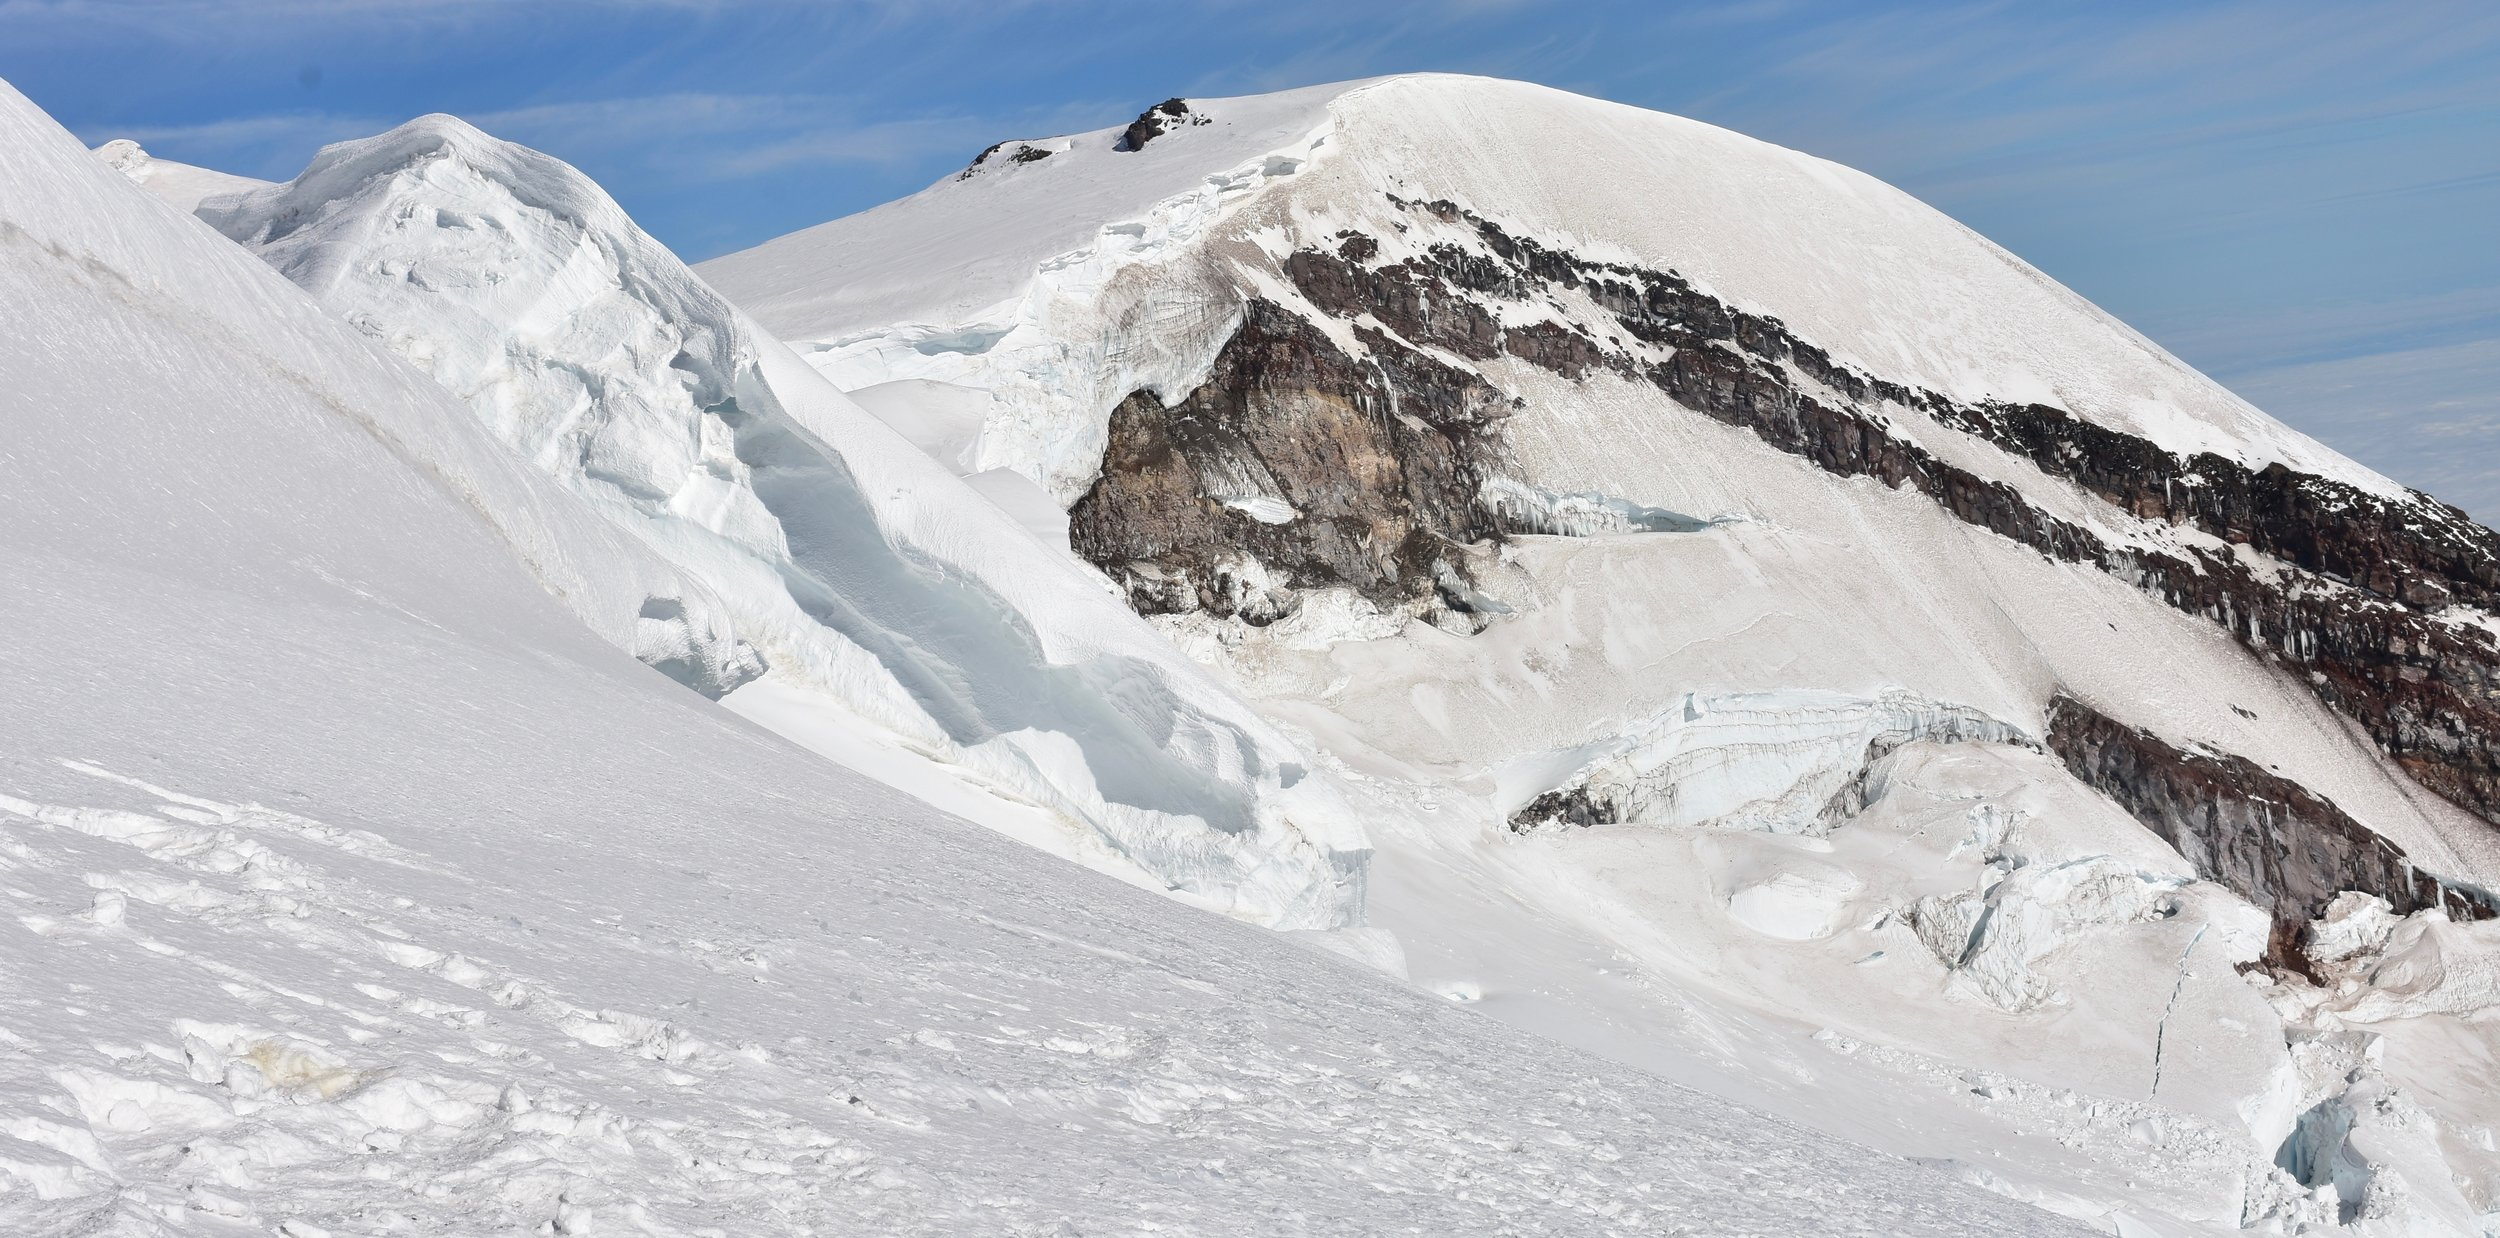 Liberty Cap from Emmons Glacier